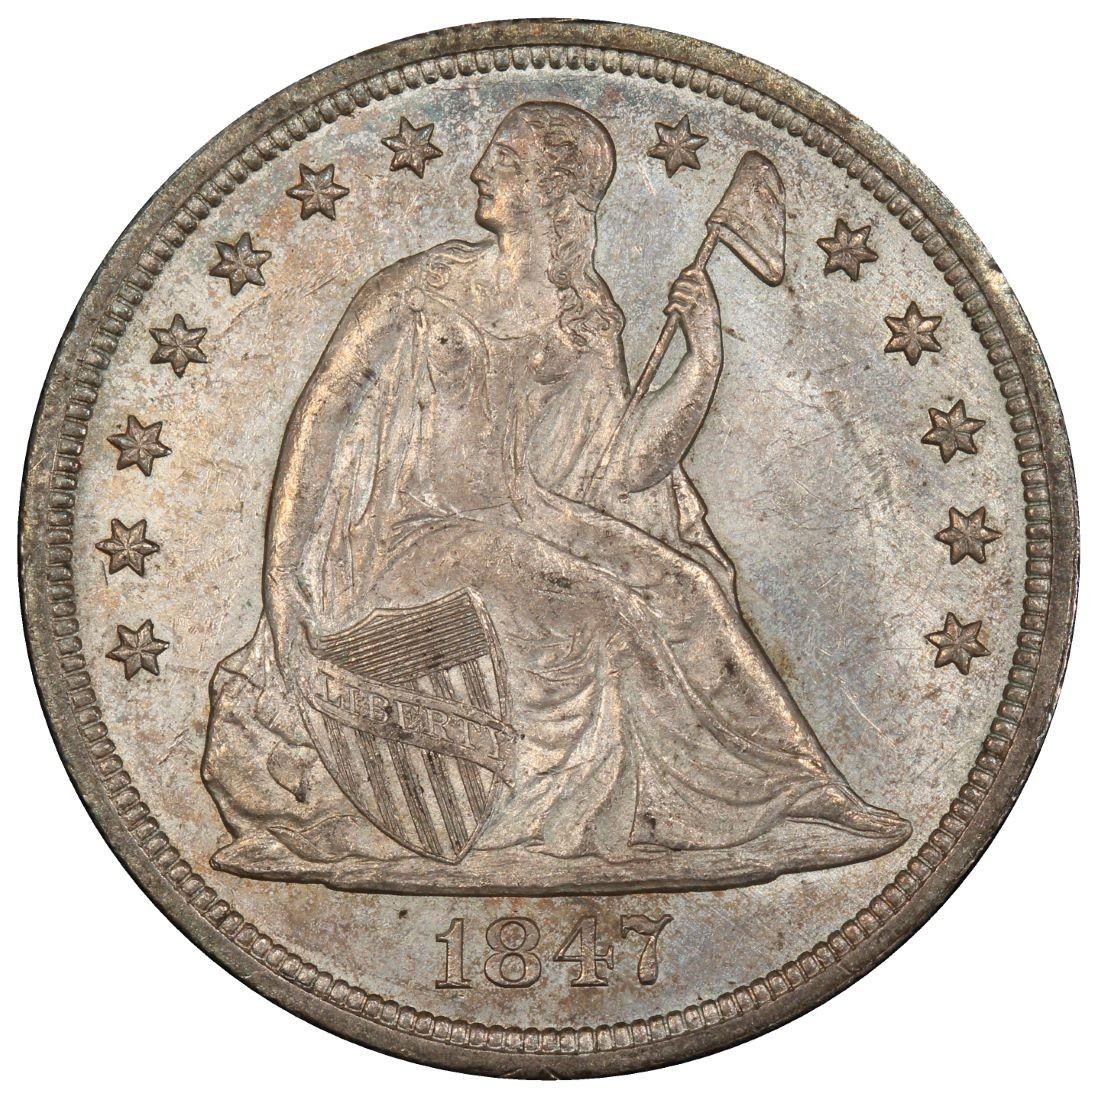 1847 Seated Liberty Silver Dollar Values And Prices Past